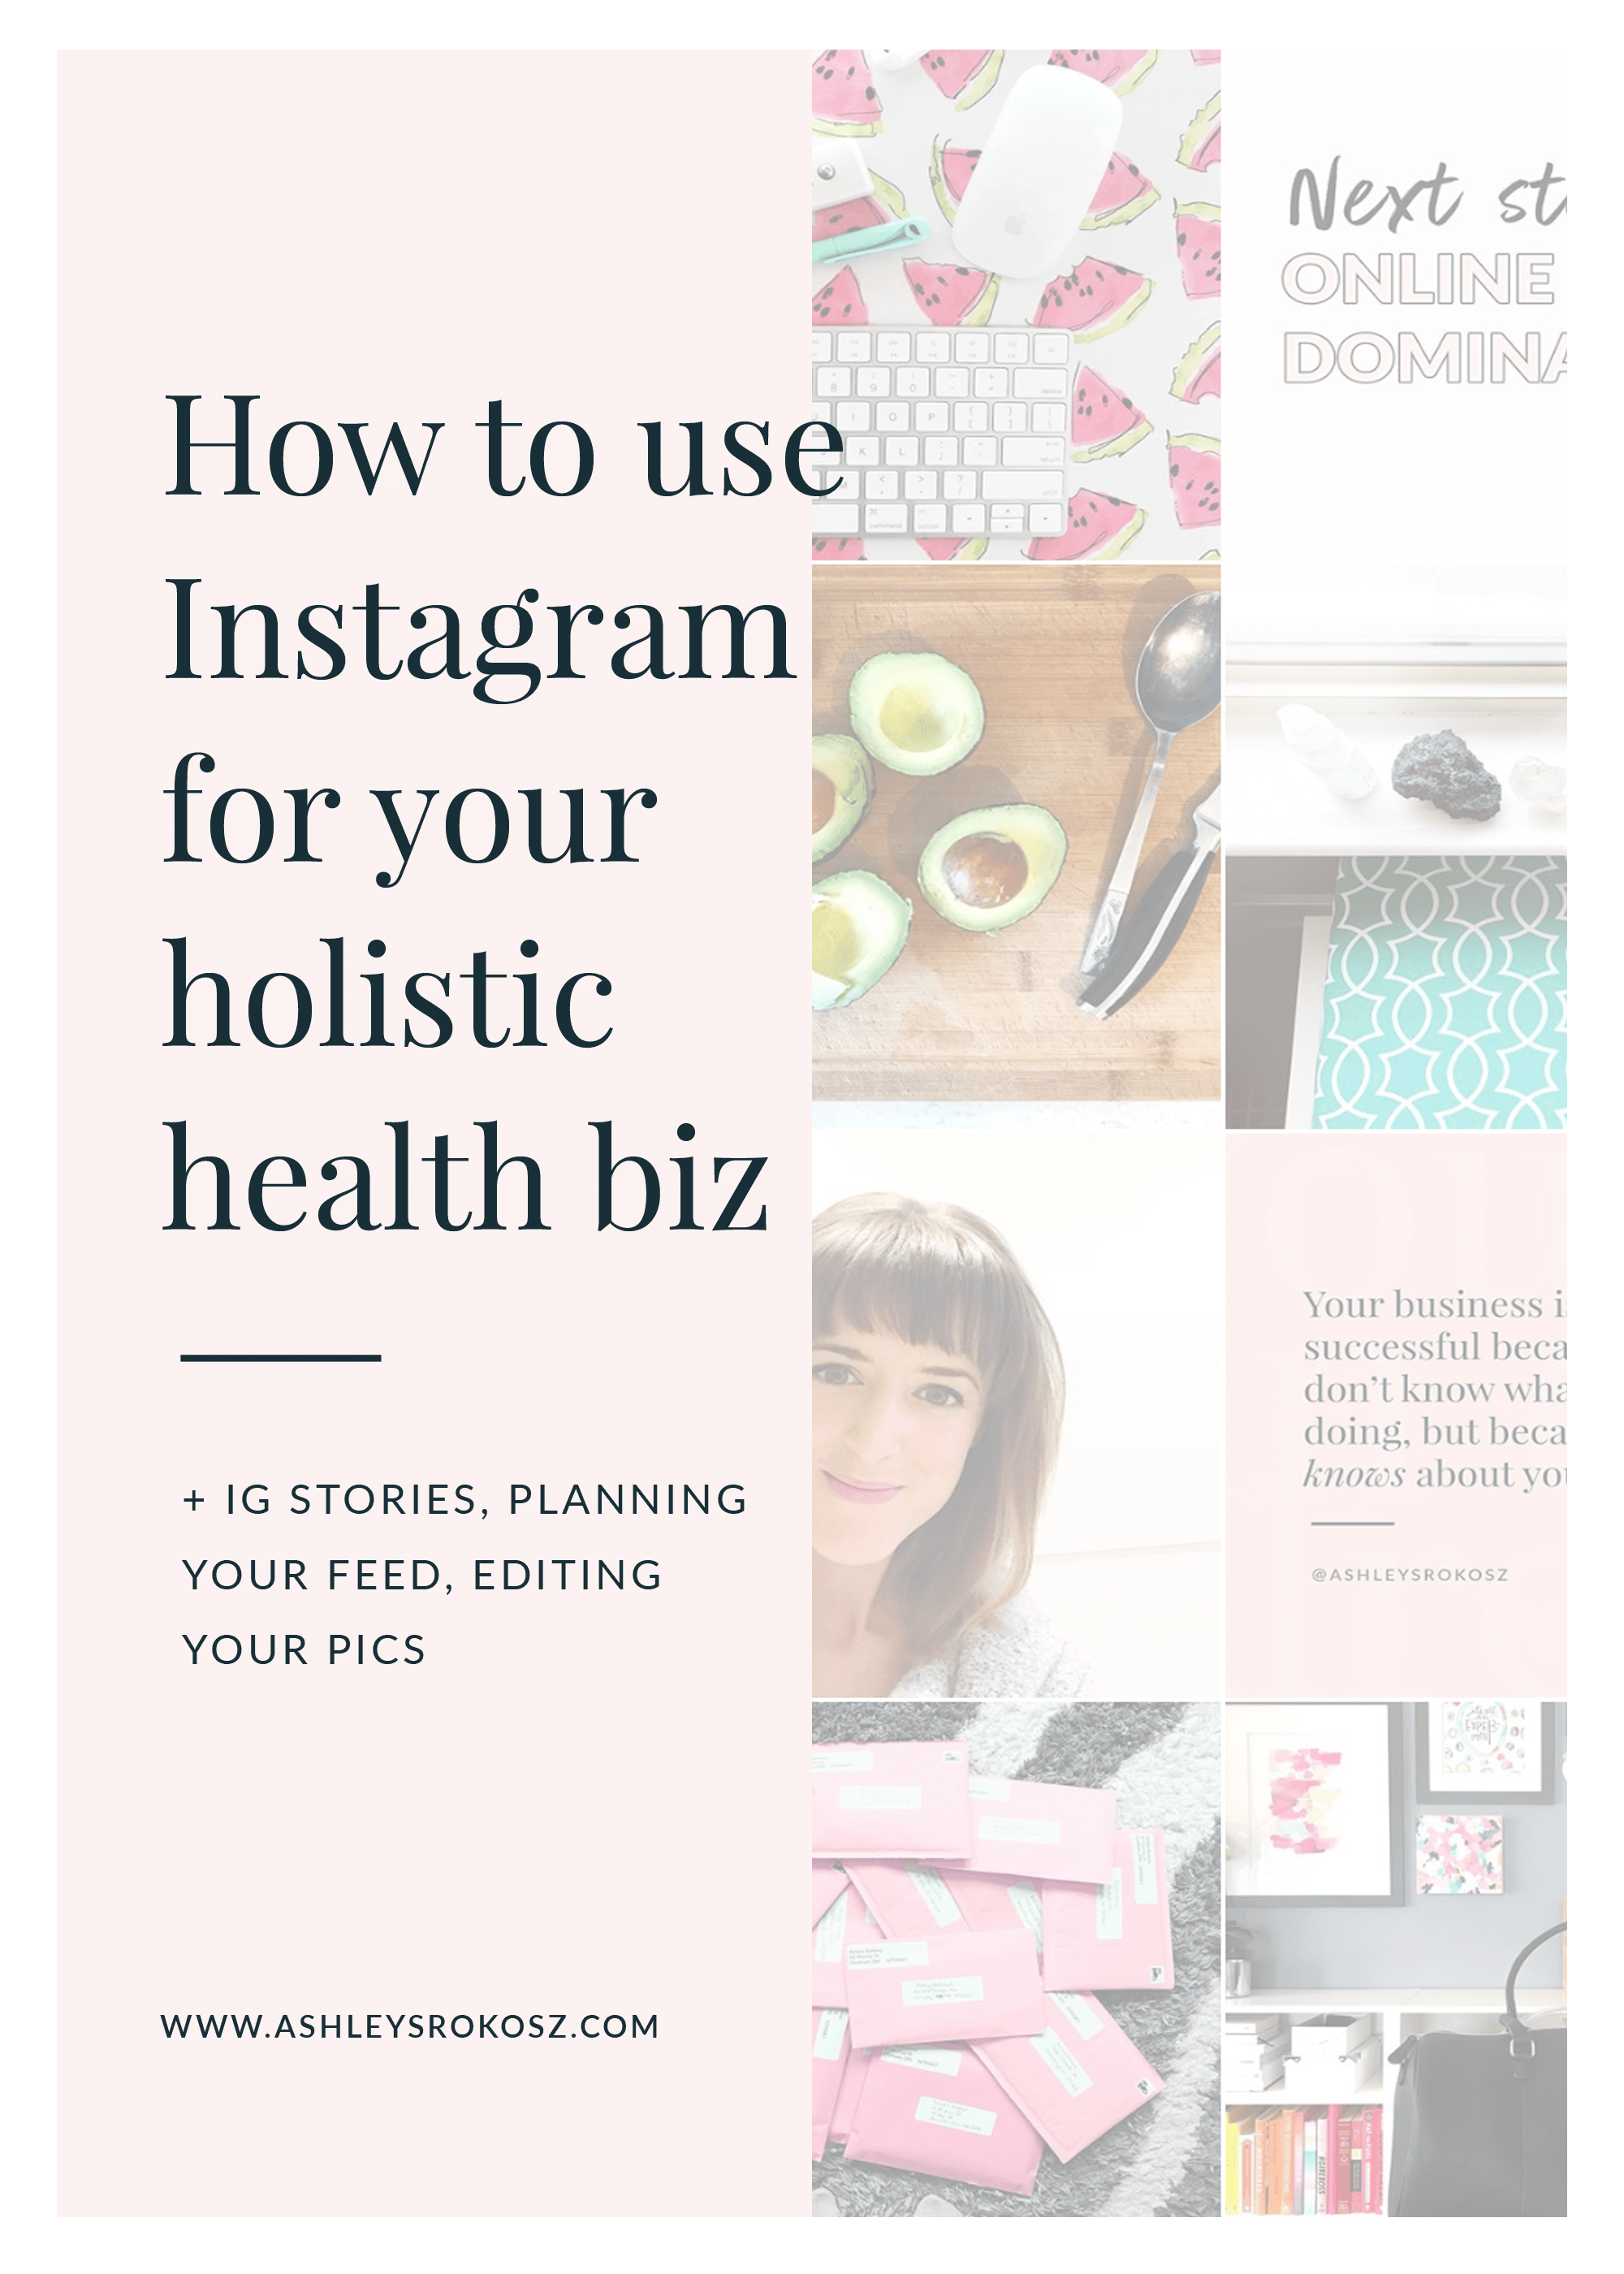 Are you a nutritionist or holistic health coach who wants to use Instagram to grow your business? Maybe you just want to up your Instagram game? Click here to learn 5 secrets to taking your Instagram feed to the next level + finding your dream clients! #healthcoach #healthcoachbusiness #nutritionist #nutritionbusiness #becomeahealthcoach #yogateacher #naturopath